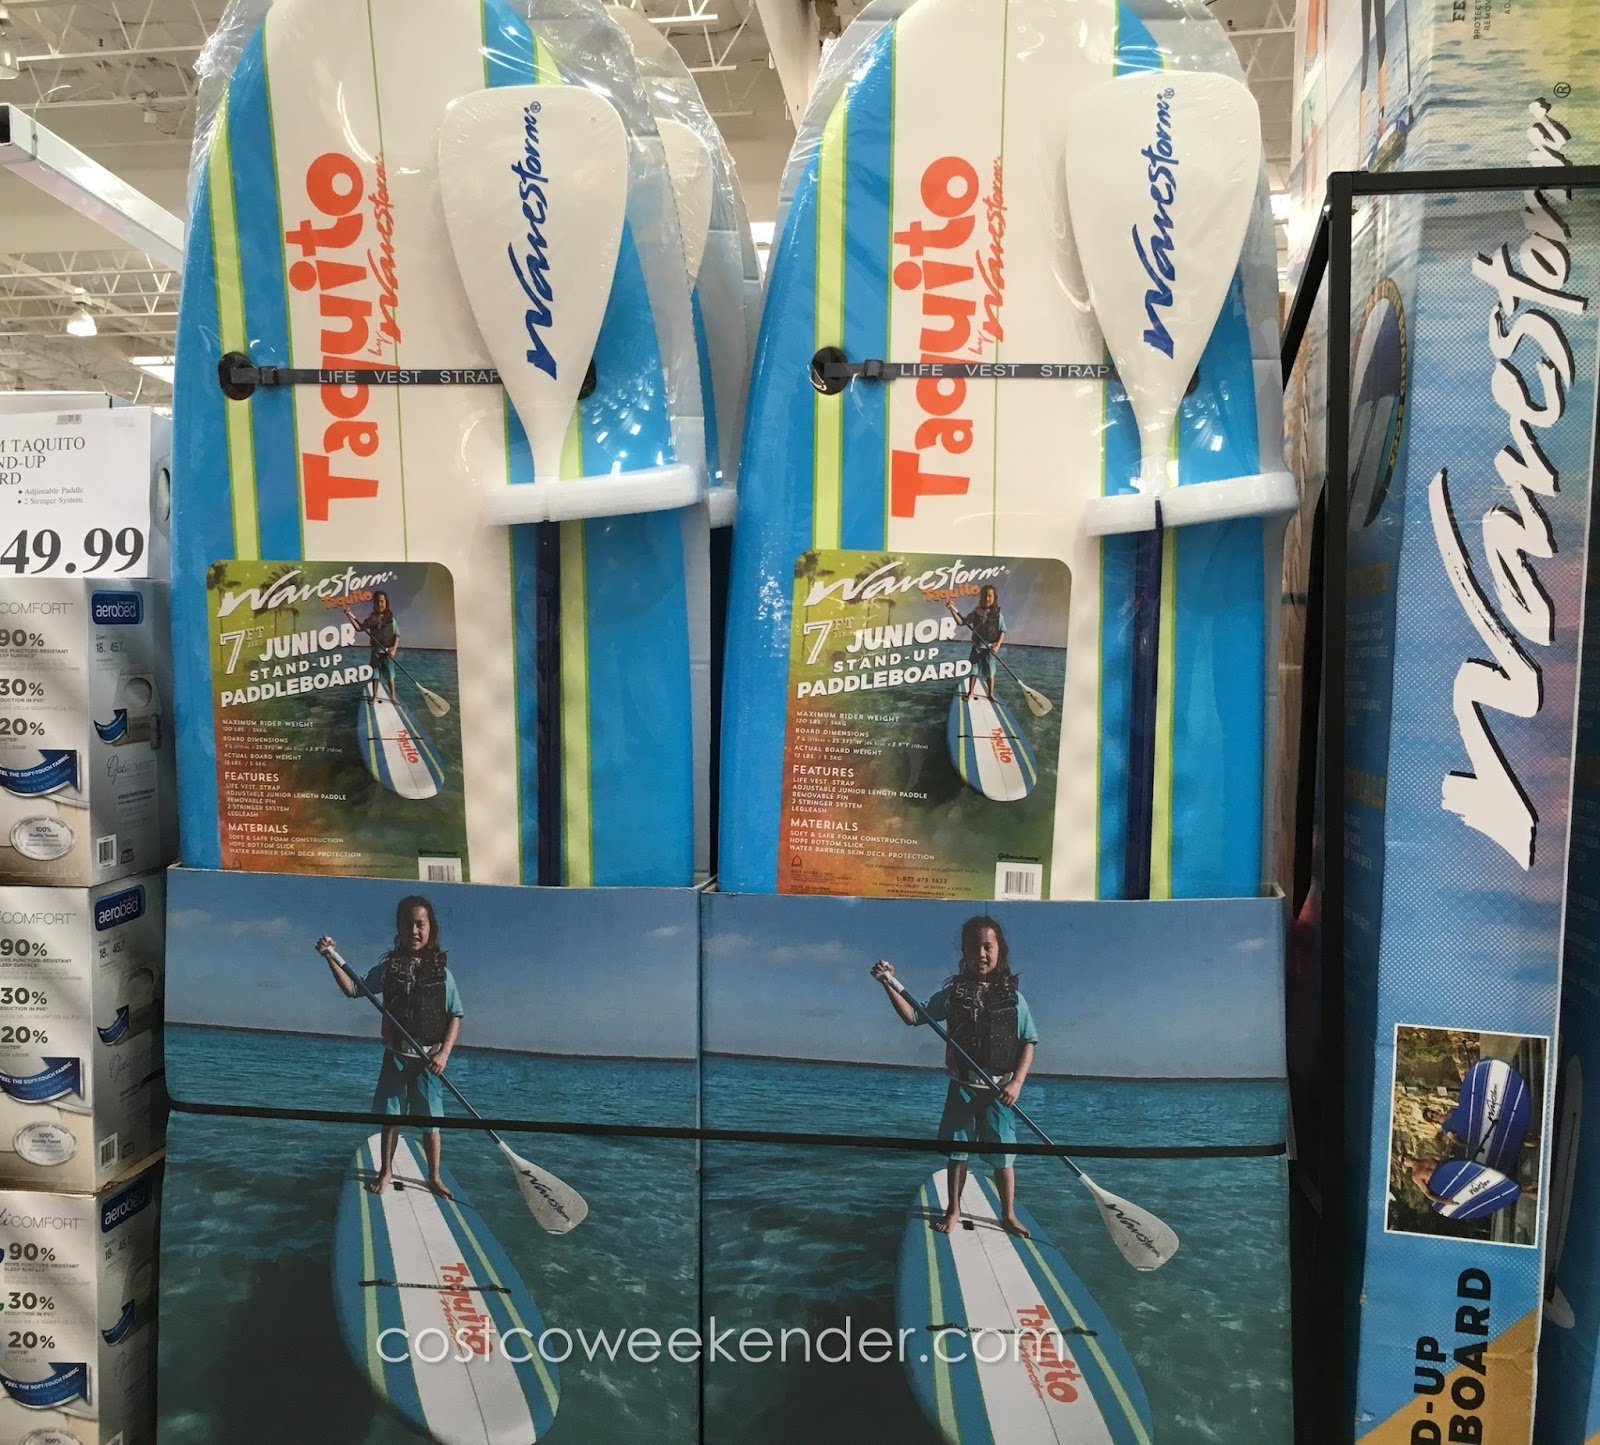 Wavestorm Taquito Junior Stand Up Paddleboard Costco